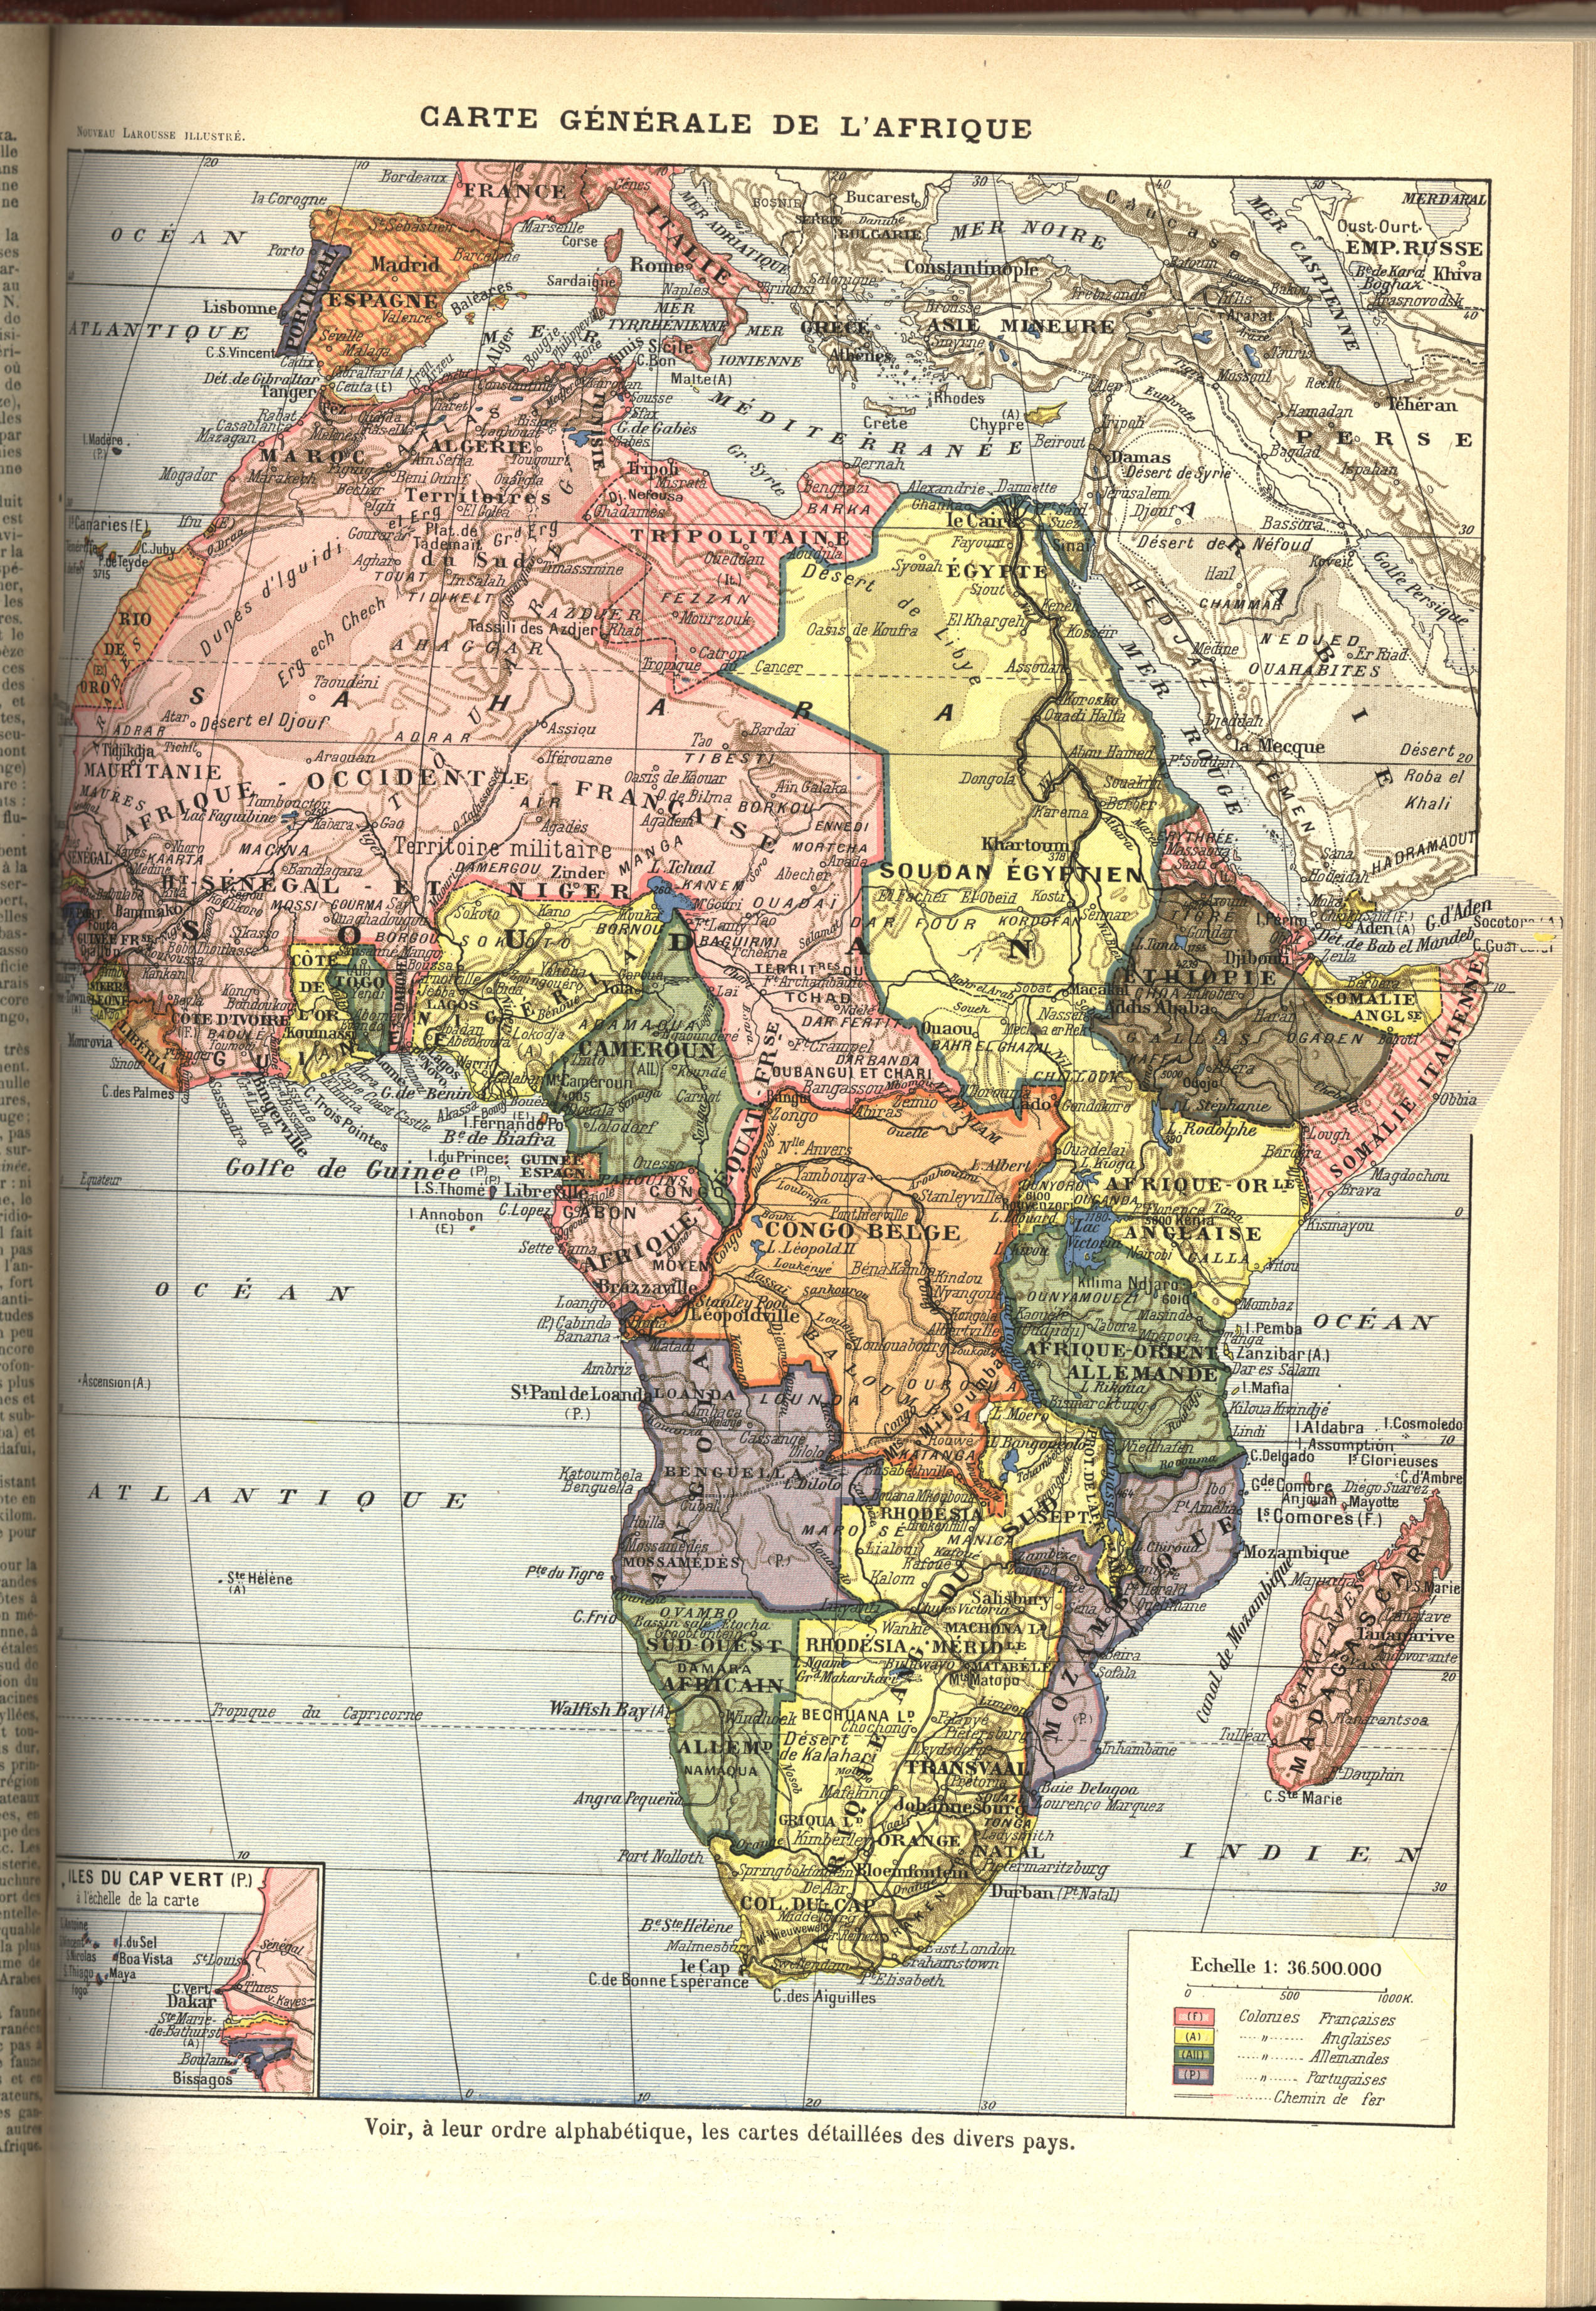 Africa 1898 Scanned Maps Map Library Msu Libraries